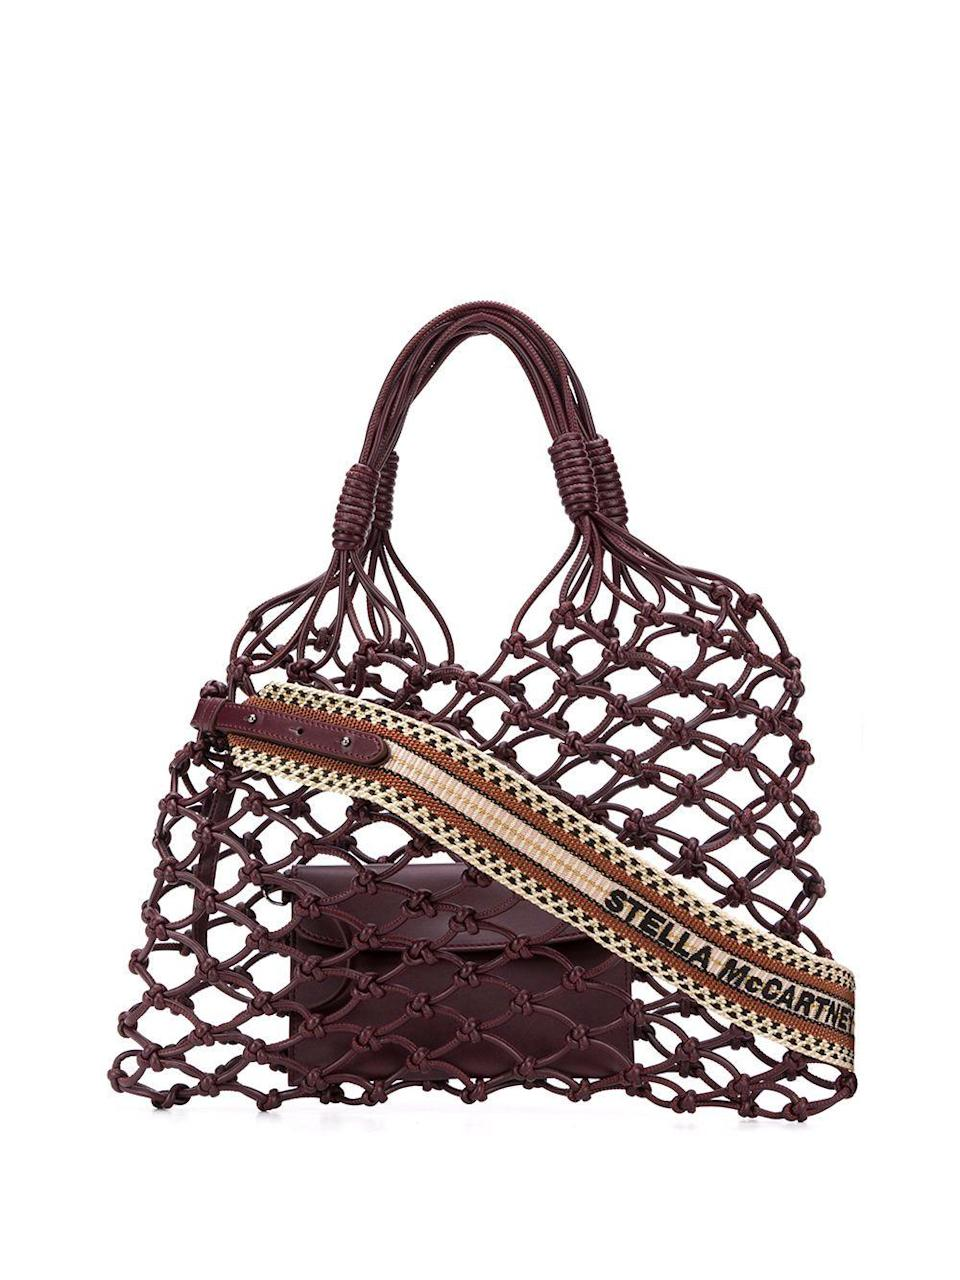 """<p><strong>Stella McCartney</strong></p><p>farfetch.com</p><p><strong>$925.00</strong></p><p><a href=""""https://go.redirectingat.com?id=74968X1596630&url=https%3A%2F%2Fwww.farfetch.com%2Fshopping%2Fwomen%2Fstella-mccartney-knotted-structure-tote-item-14920876.aspx&sref=https%3A%2F%2Fwww.townandcountrymag.com%2Fstyle%2Fg36132033%2Fthe-weekly-covet-april-16-2021%2F"""" rel=""""nofollow noopener"""" target=""""_blank"""" data-ylk=""""slk:Shop Now"""" class=""""link rapid-noclick-resp"""">Shop Now</a></p><p>""""Can't go wrong with anything Stella McCartney, whose entire brand ethos is built around sustainability. I love the idea of a bordeaux-hued net bag for chic farmer's market runs—and of course for transporting many a bottle of Bordeaux.""""—<em>Leena Kim, Associate Editor</em></p>"""